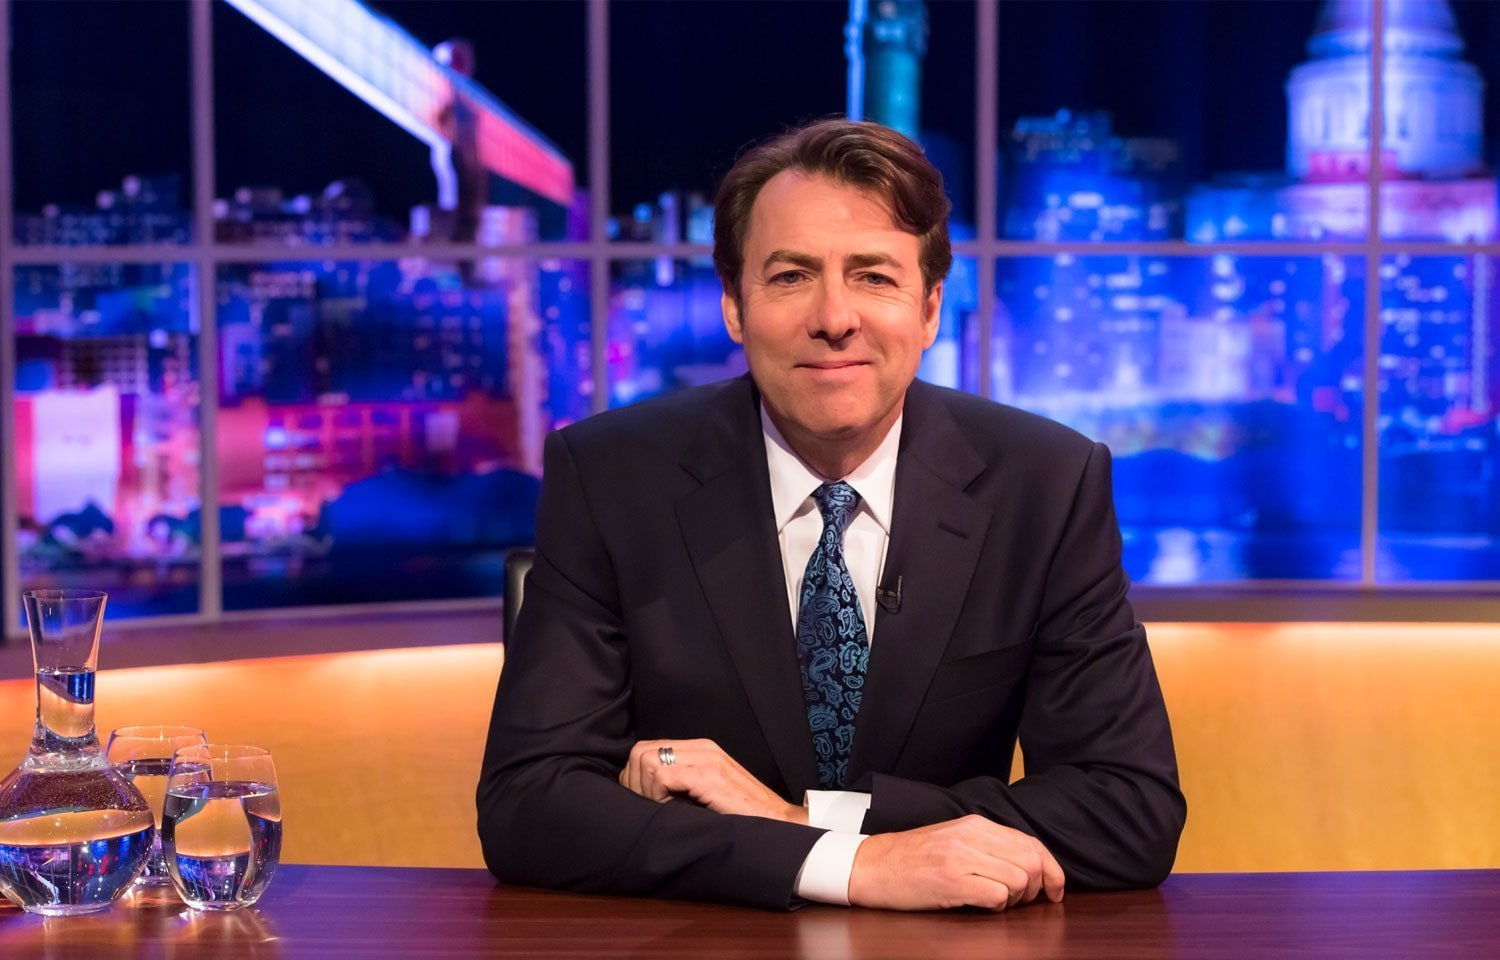 THE JONATHAN ROSS SHOW RETURNS WITH RUSSELL KANE THIS SATURDAY